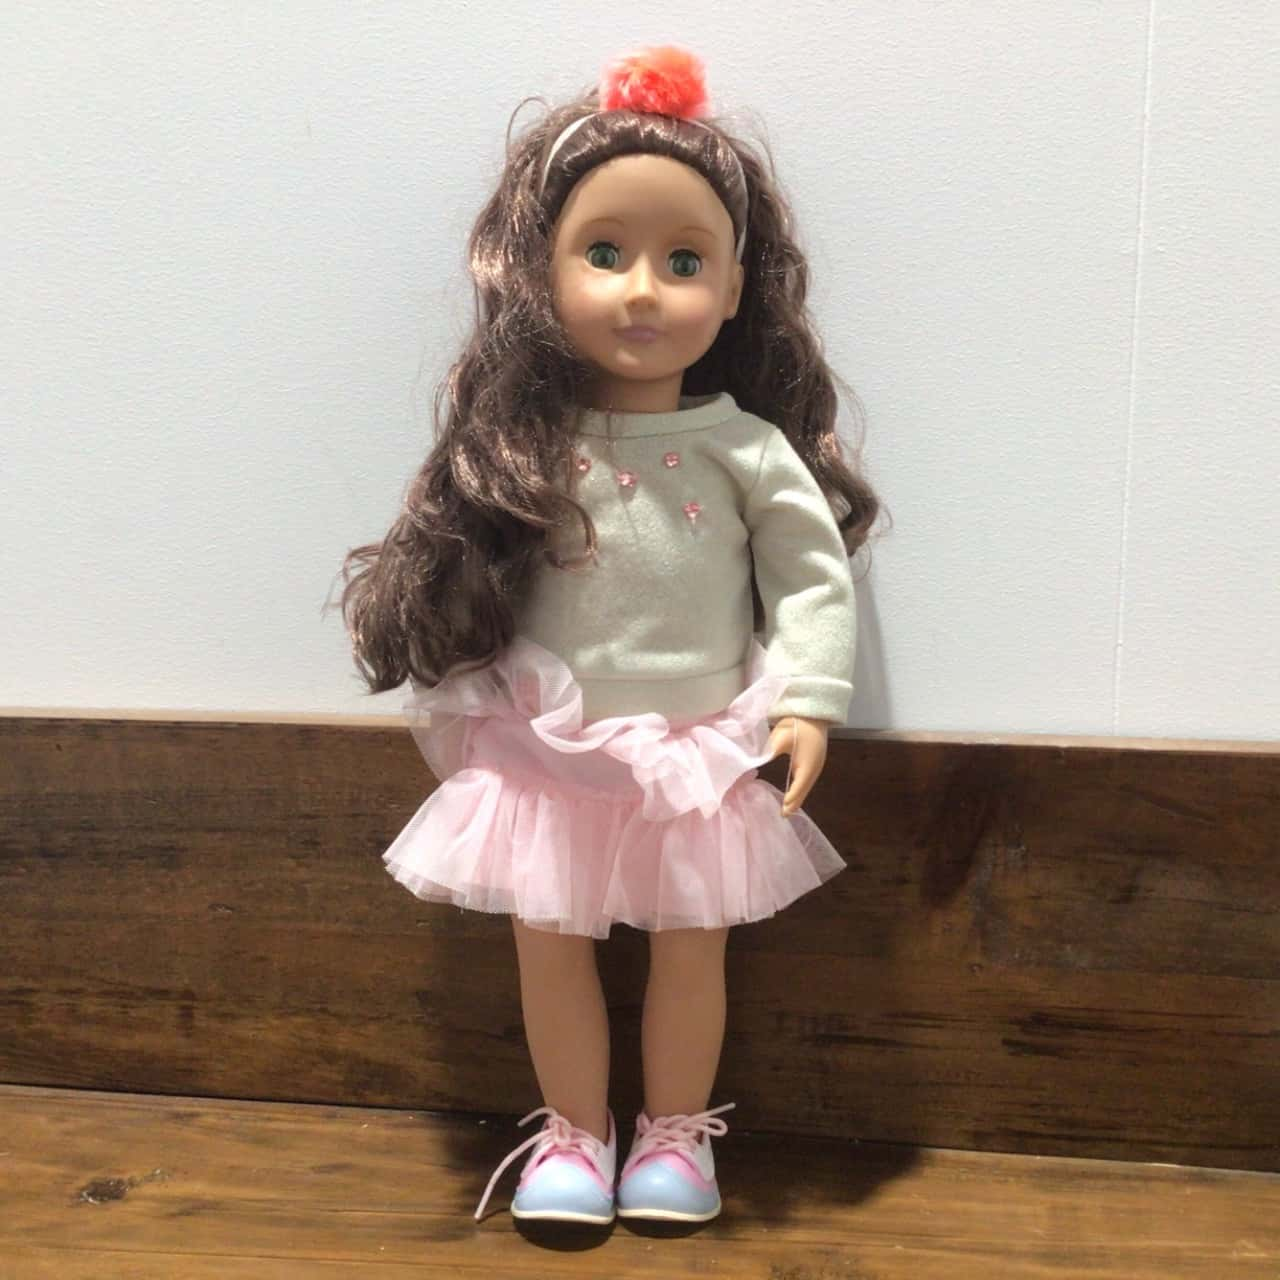 OUR GENERATION DOLL 46 cm VG COND